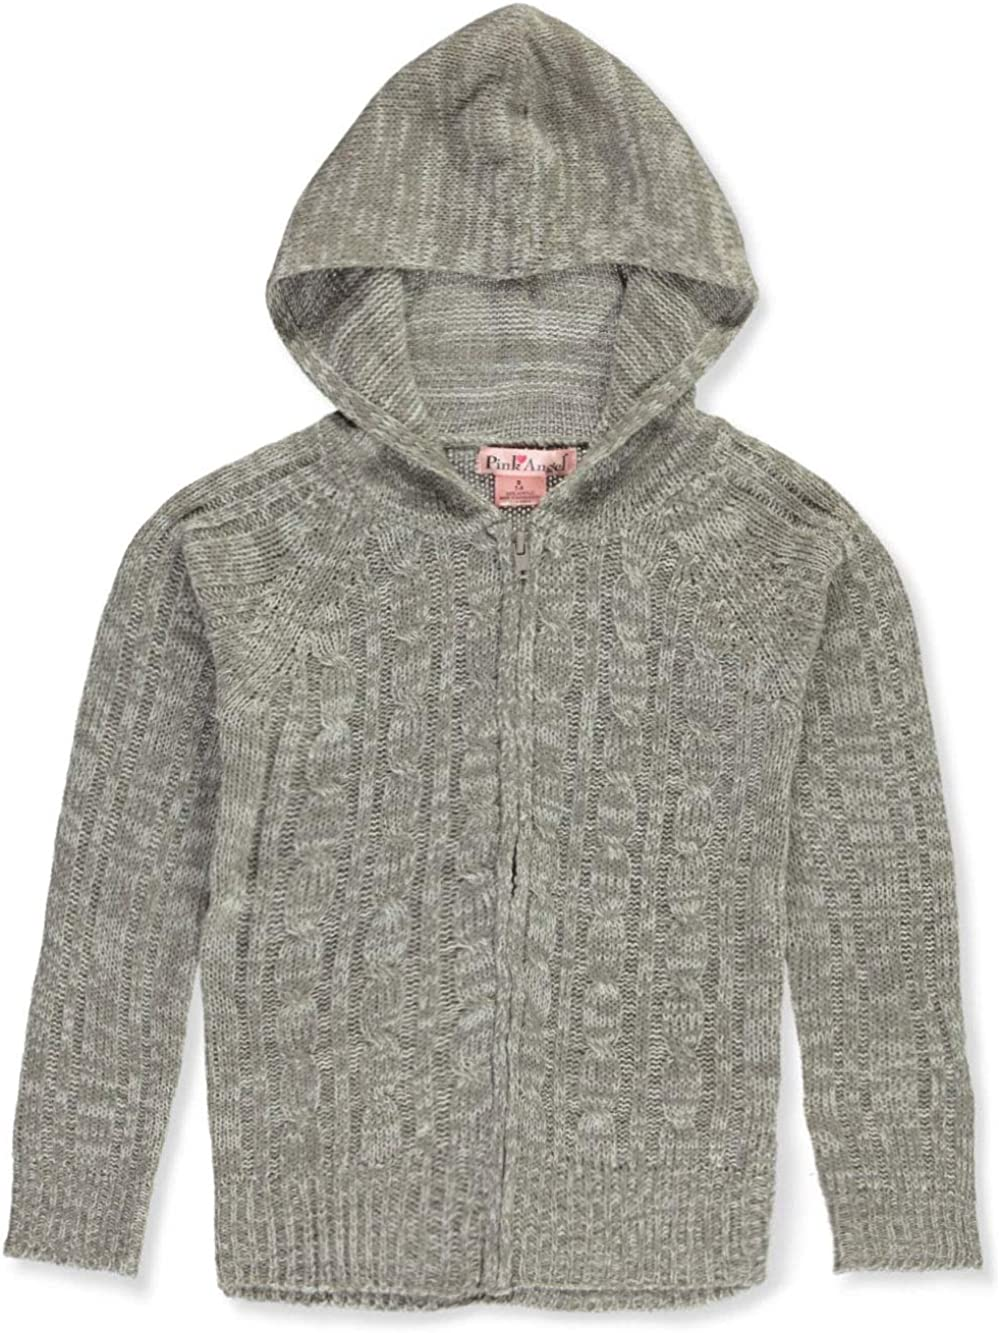 Pink Angel Girls Cable Knit Hooded Cardigan